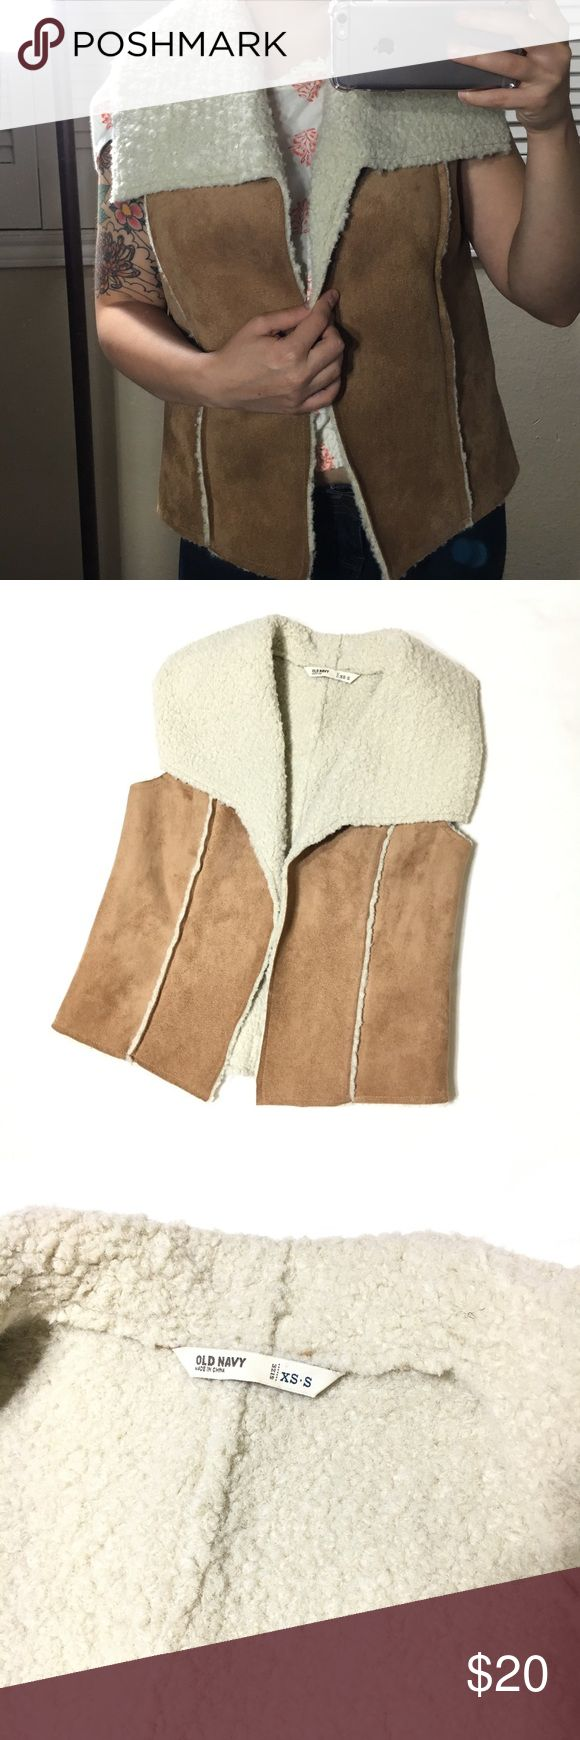 Old Navy Sherpa Vest Old Navy Sherpa Vest in size XS-S depending on how loose/fitted you want it. Gently worn with no sign of stains or rips. Old Navy Jackets & Coats Vests